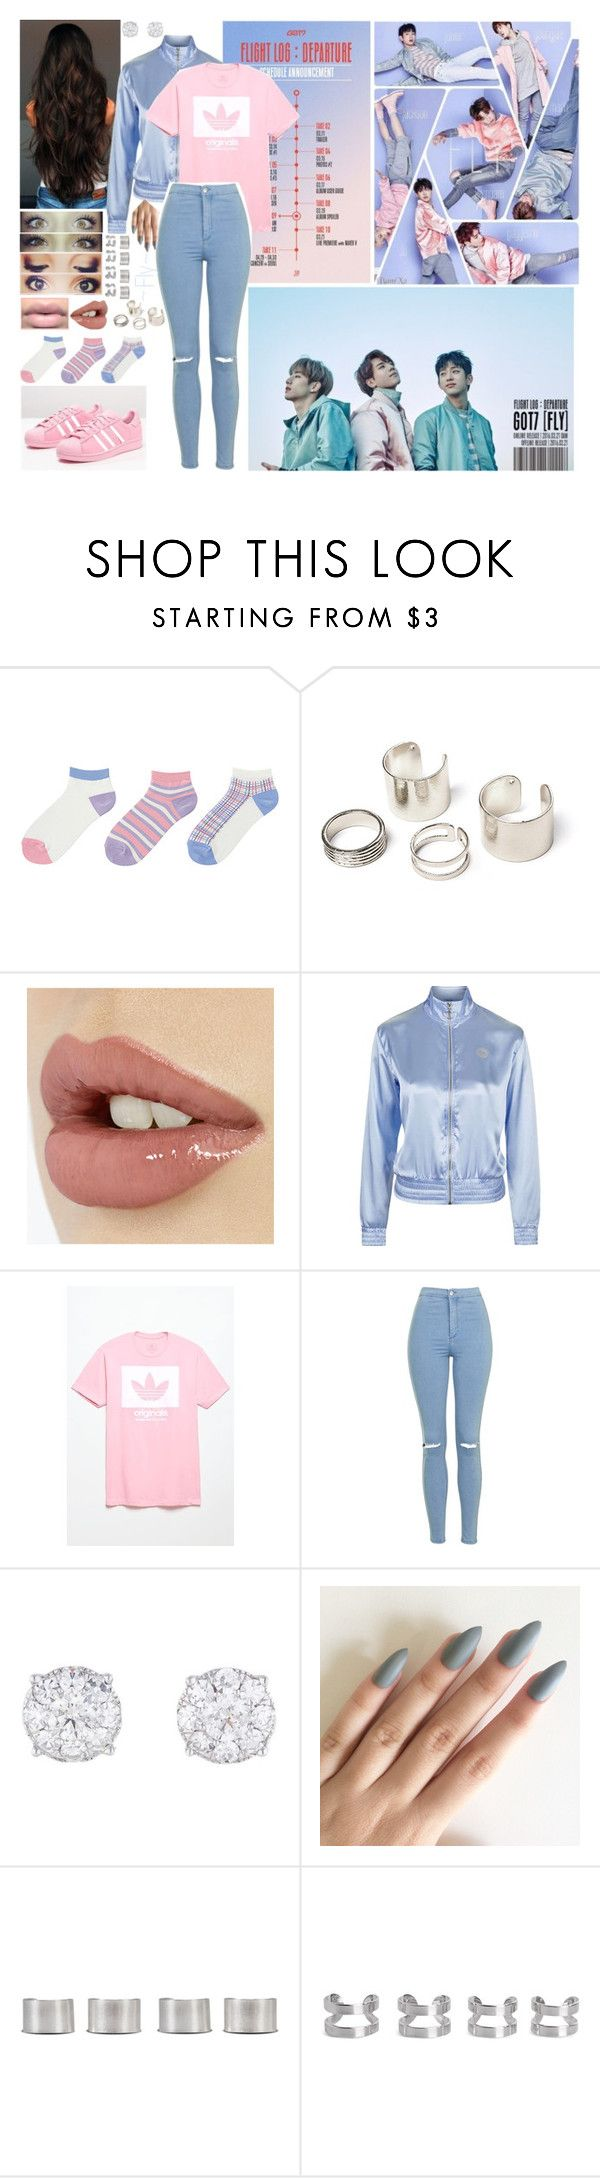 """""""Got7 Fly In USA"""" by mokatinker0120 ❤ liked on Polyvore featuring Uniqlo, adidas Originals, Topshop, adidas, Maison Margiela, fly, GOT7, flyinusa and FlightDeparture"""